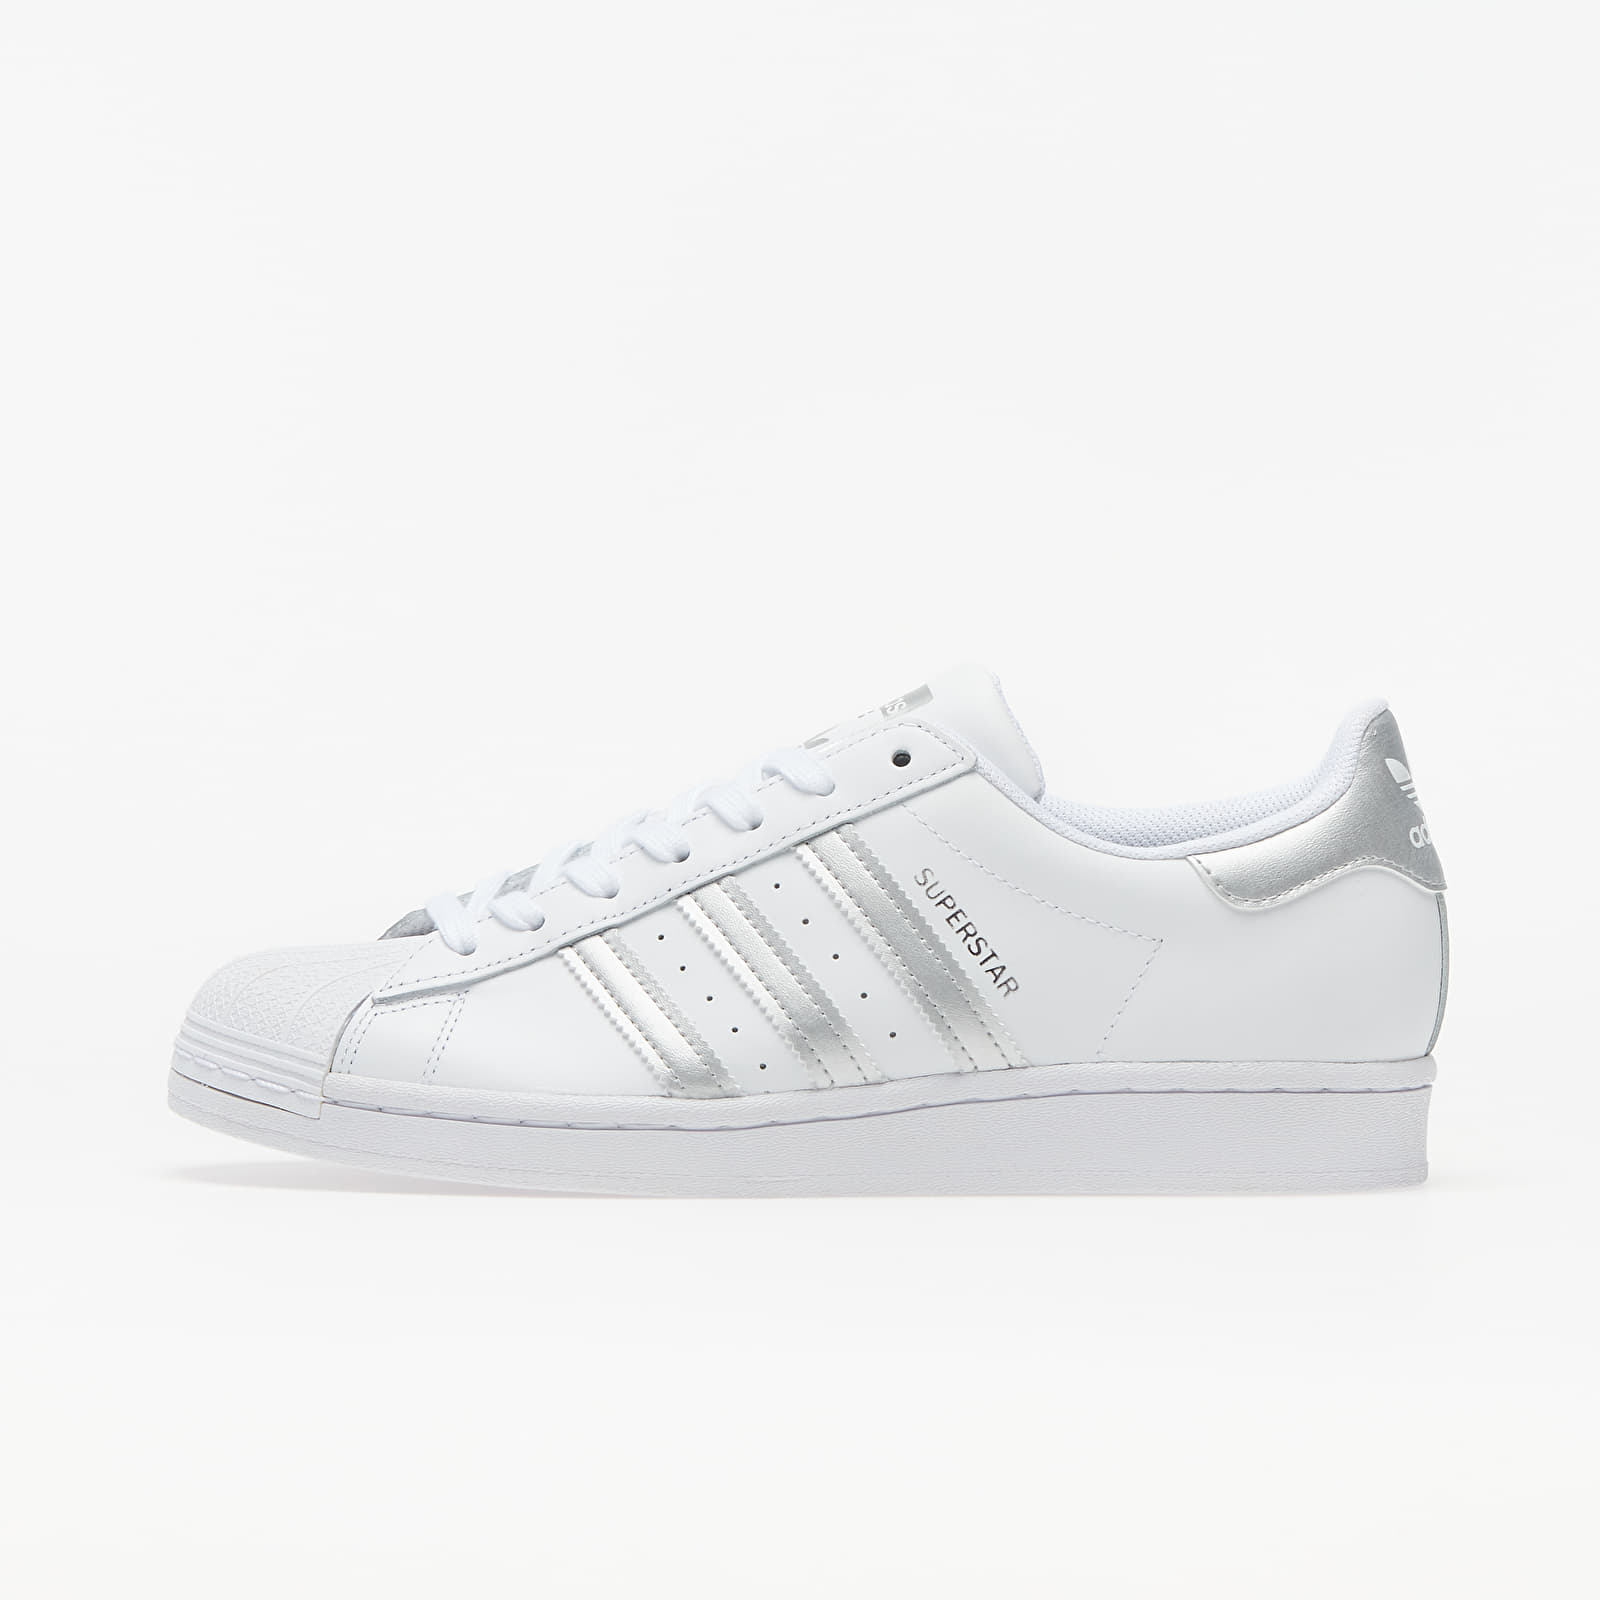 adidas Superstar Ftw White/ Silver Metalic/ Ftw White FX2329